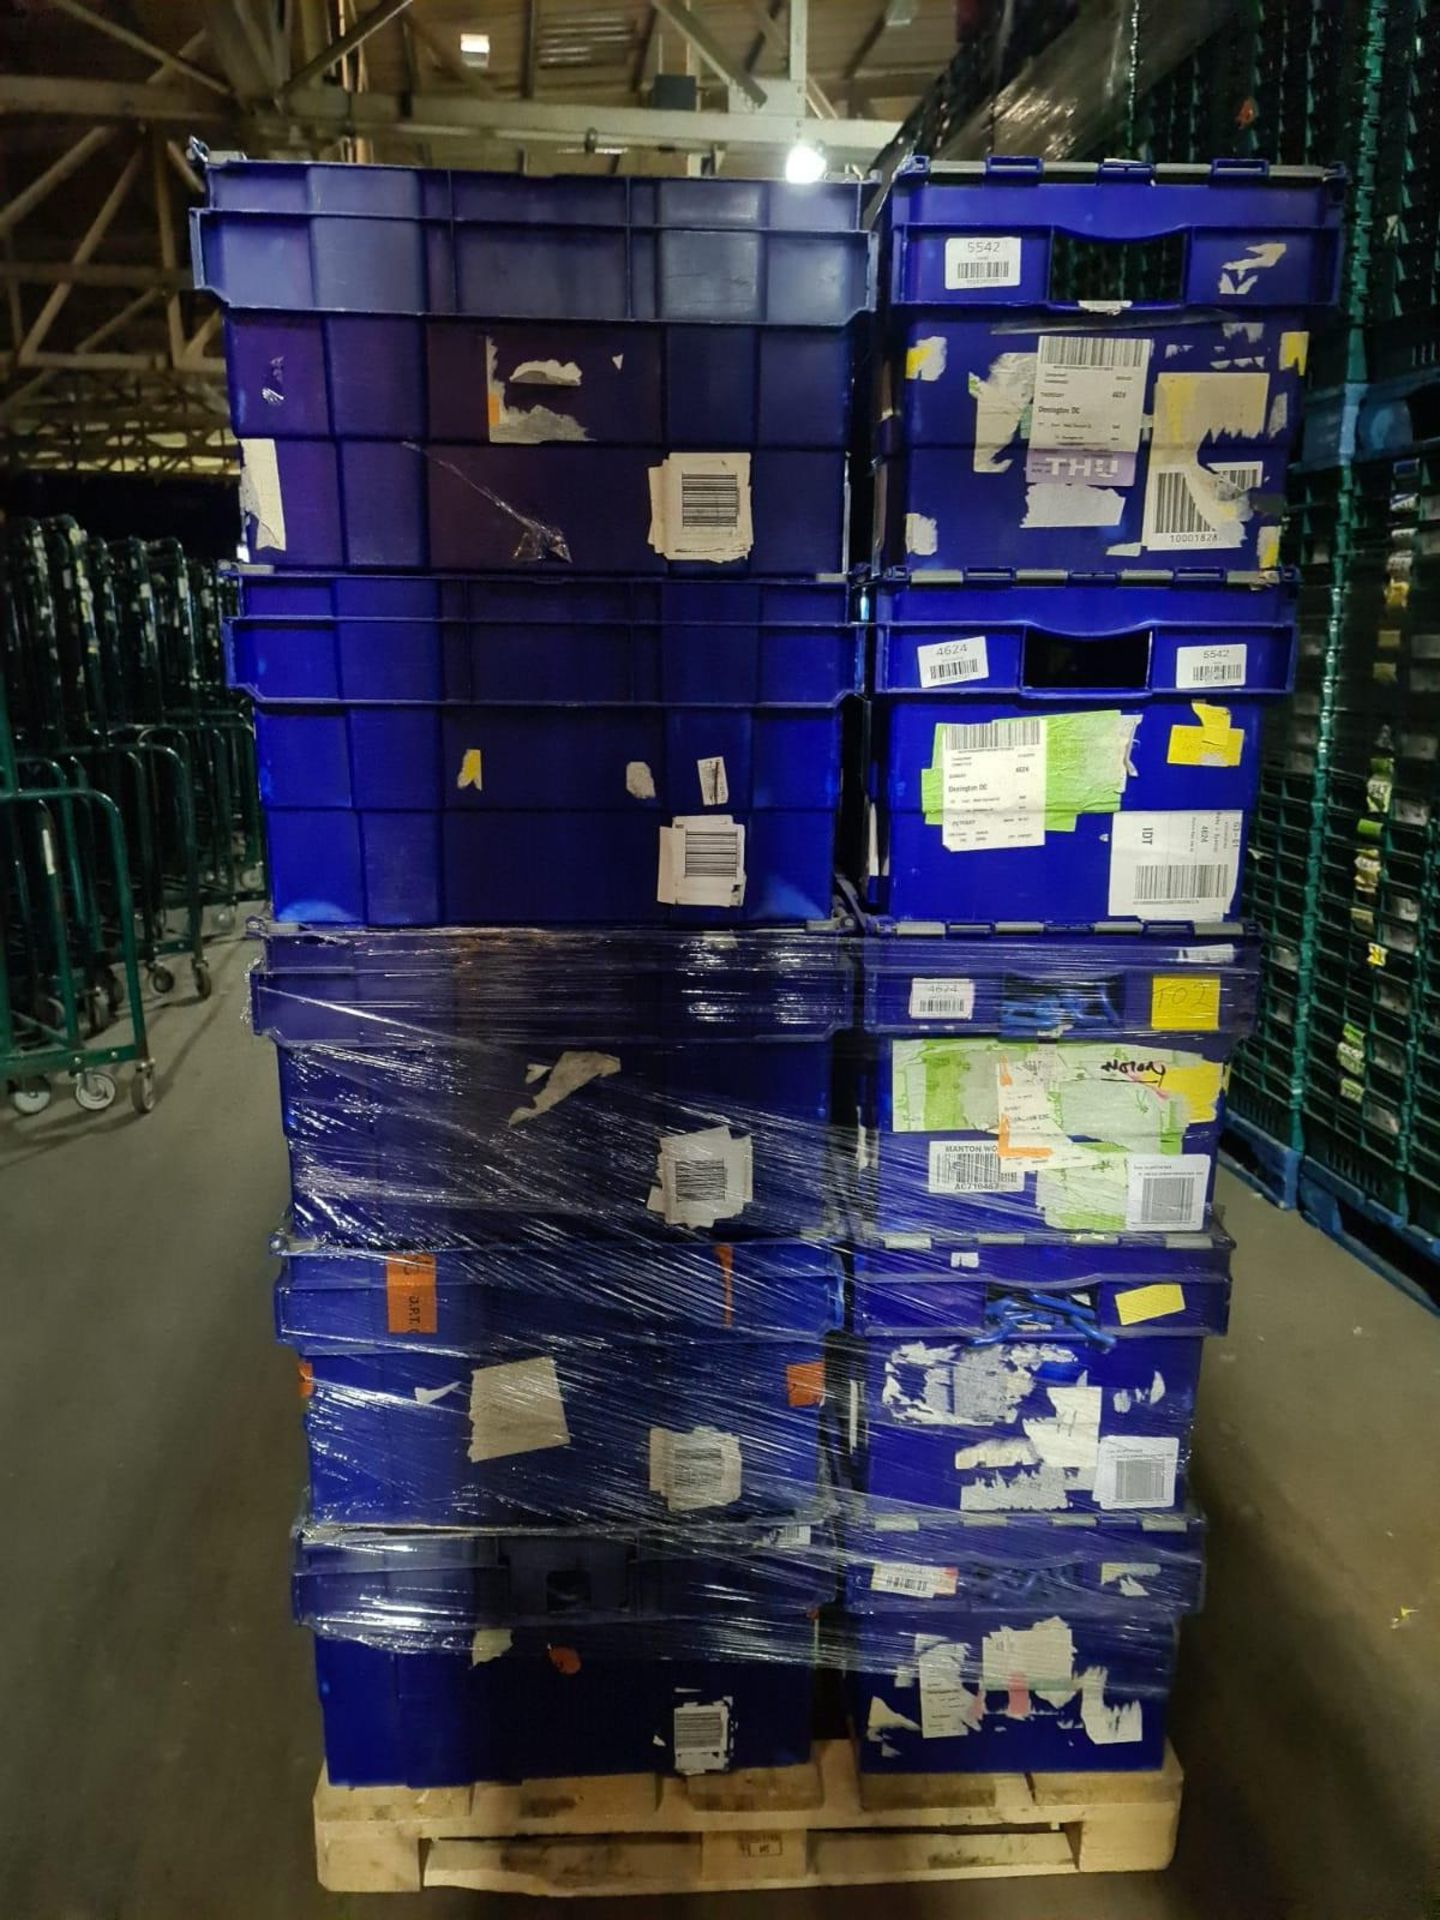 Pallet of 70 x used Blue Solid industrial storage containers/tote boxes from M&S. - Image 2 of 4